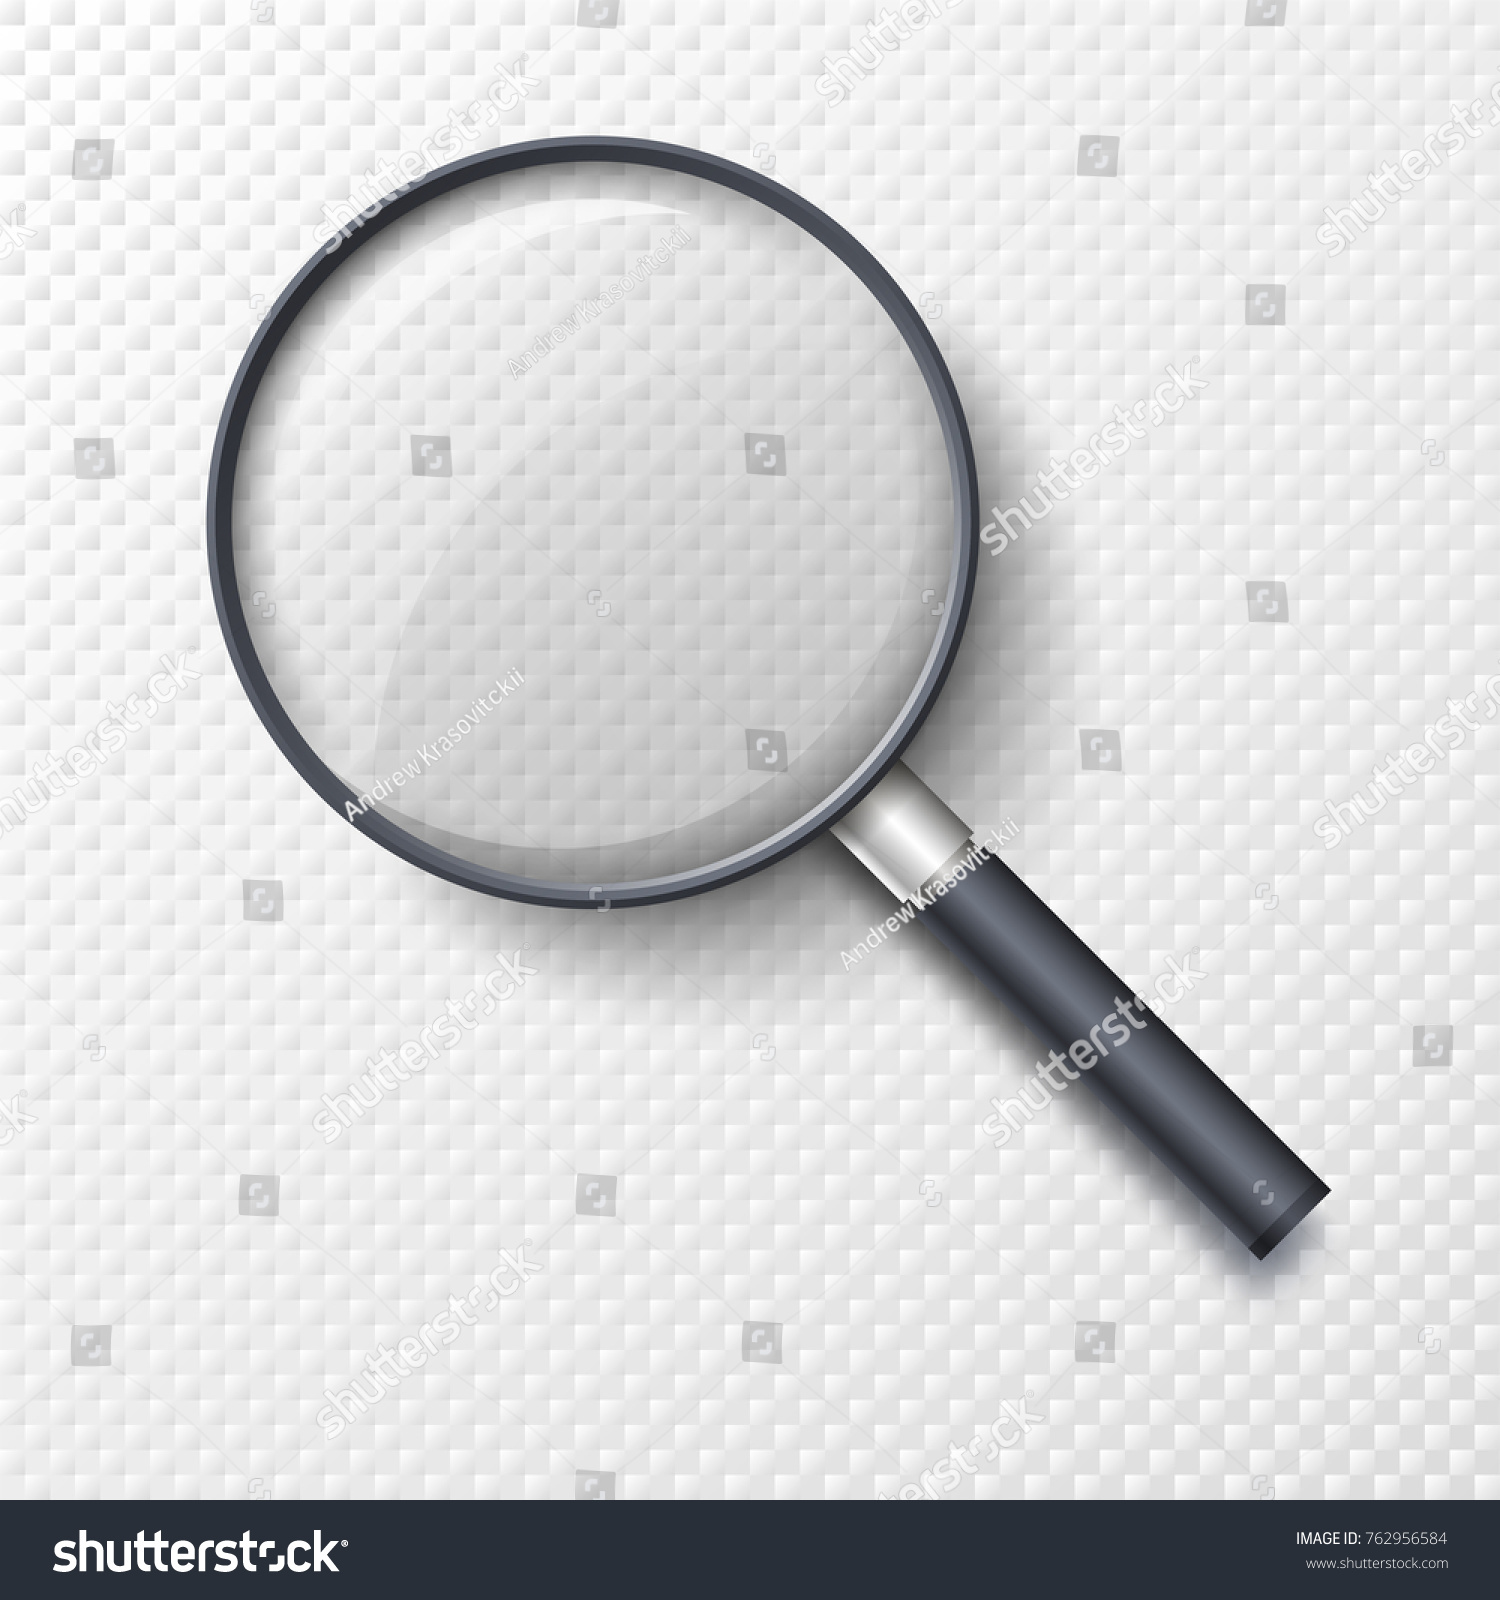 Realistic Magnifying Glass Magnifier Hand Lens Stock Vector ...